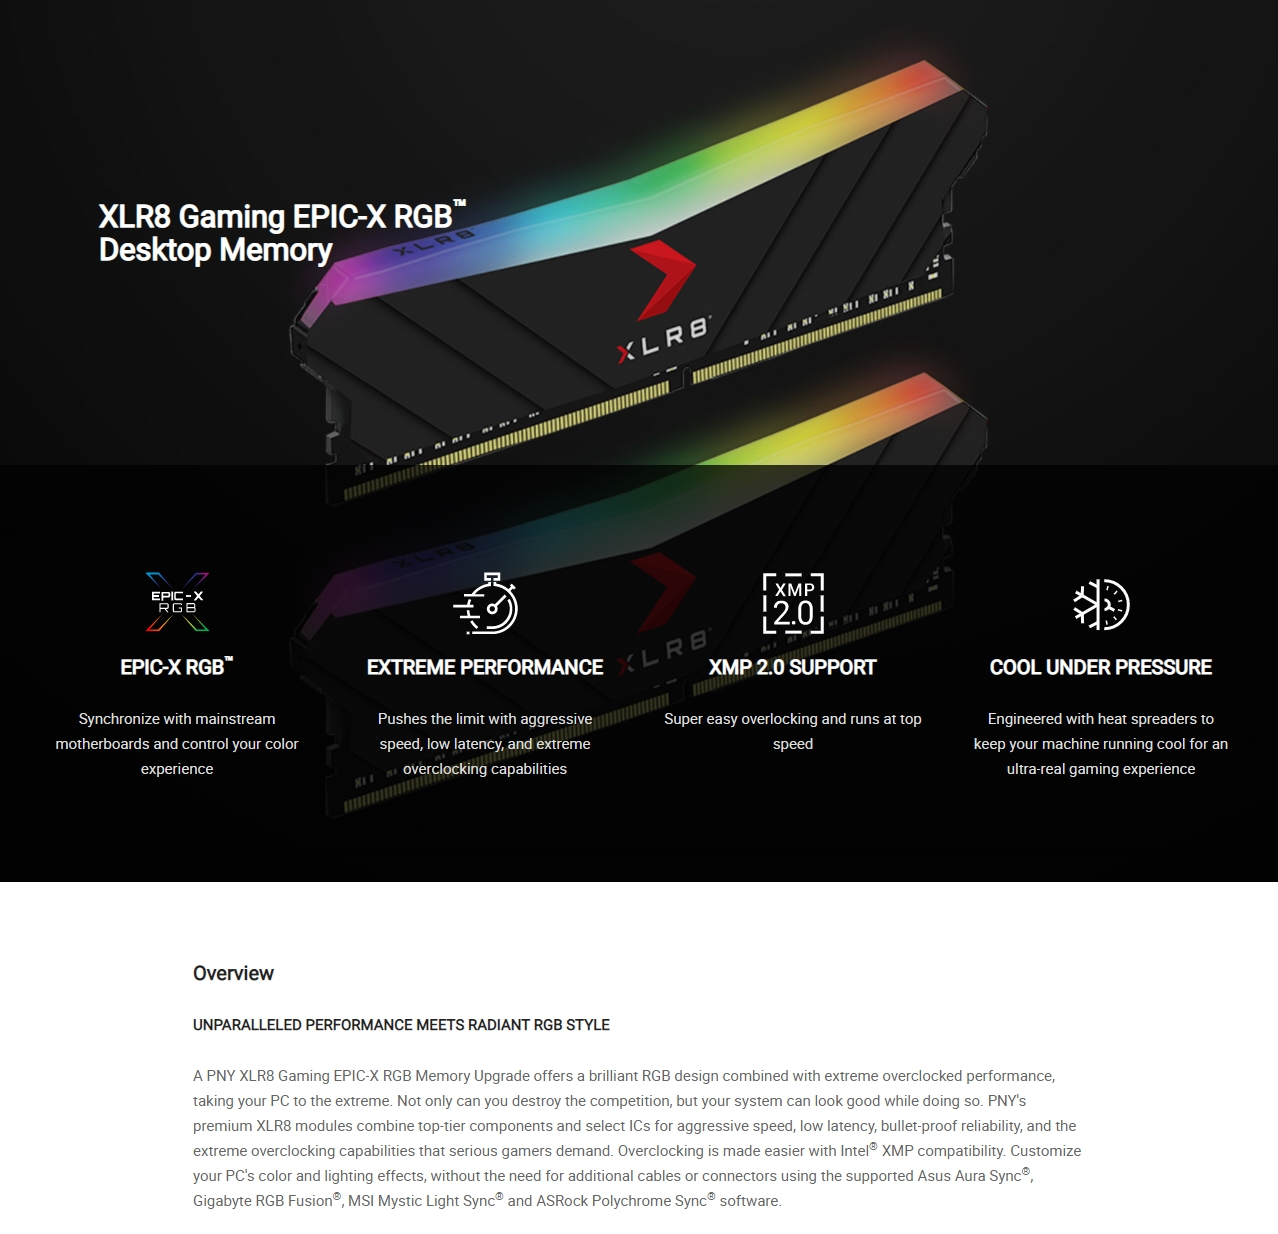 A large marketing image providing additional information about the product PNY XLR8 32GB (2x16GB) EPIC-X RGB Gaming DDR4 C16 3200Mhz - Black Edition - Additional alt info not provided